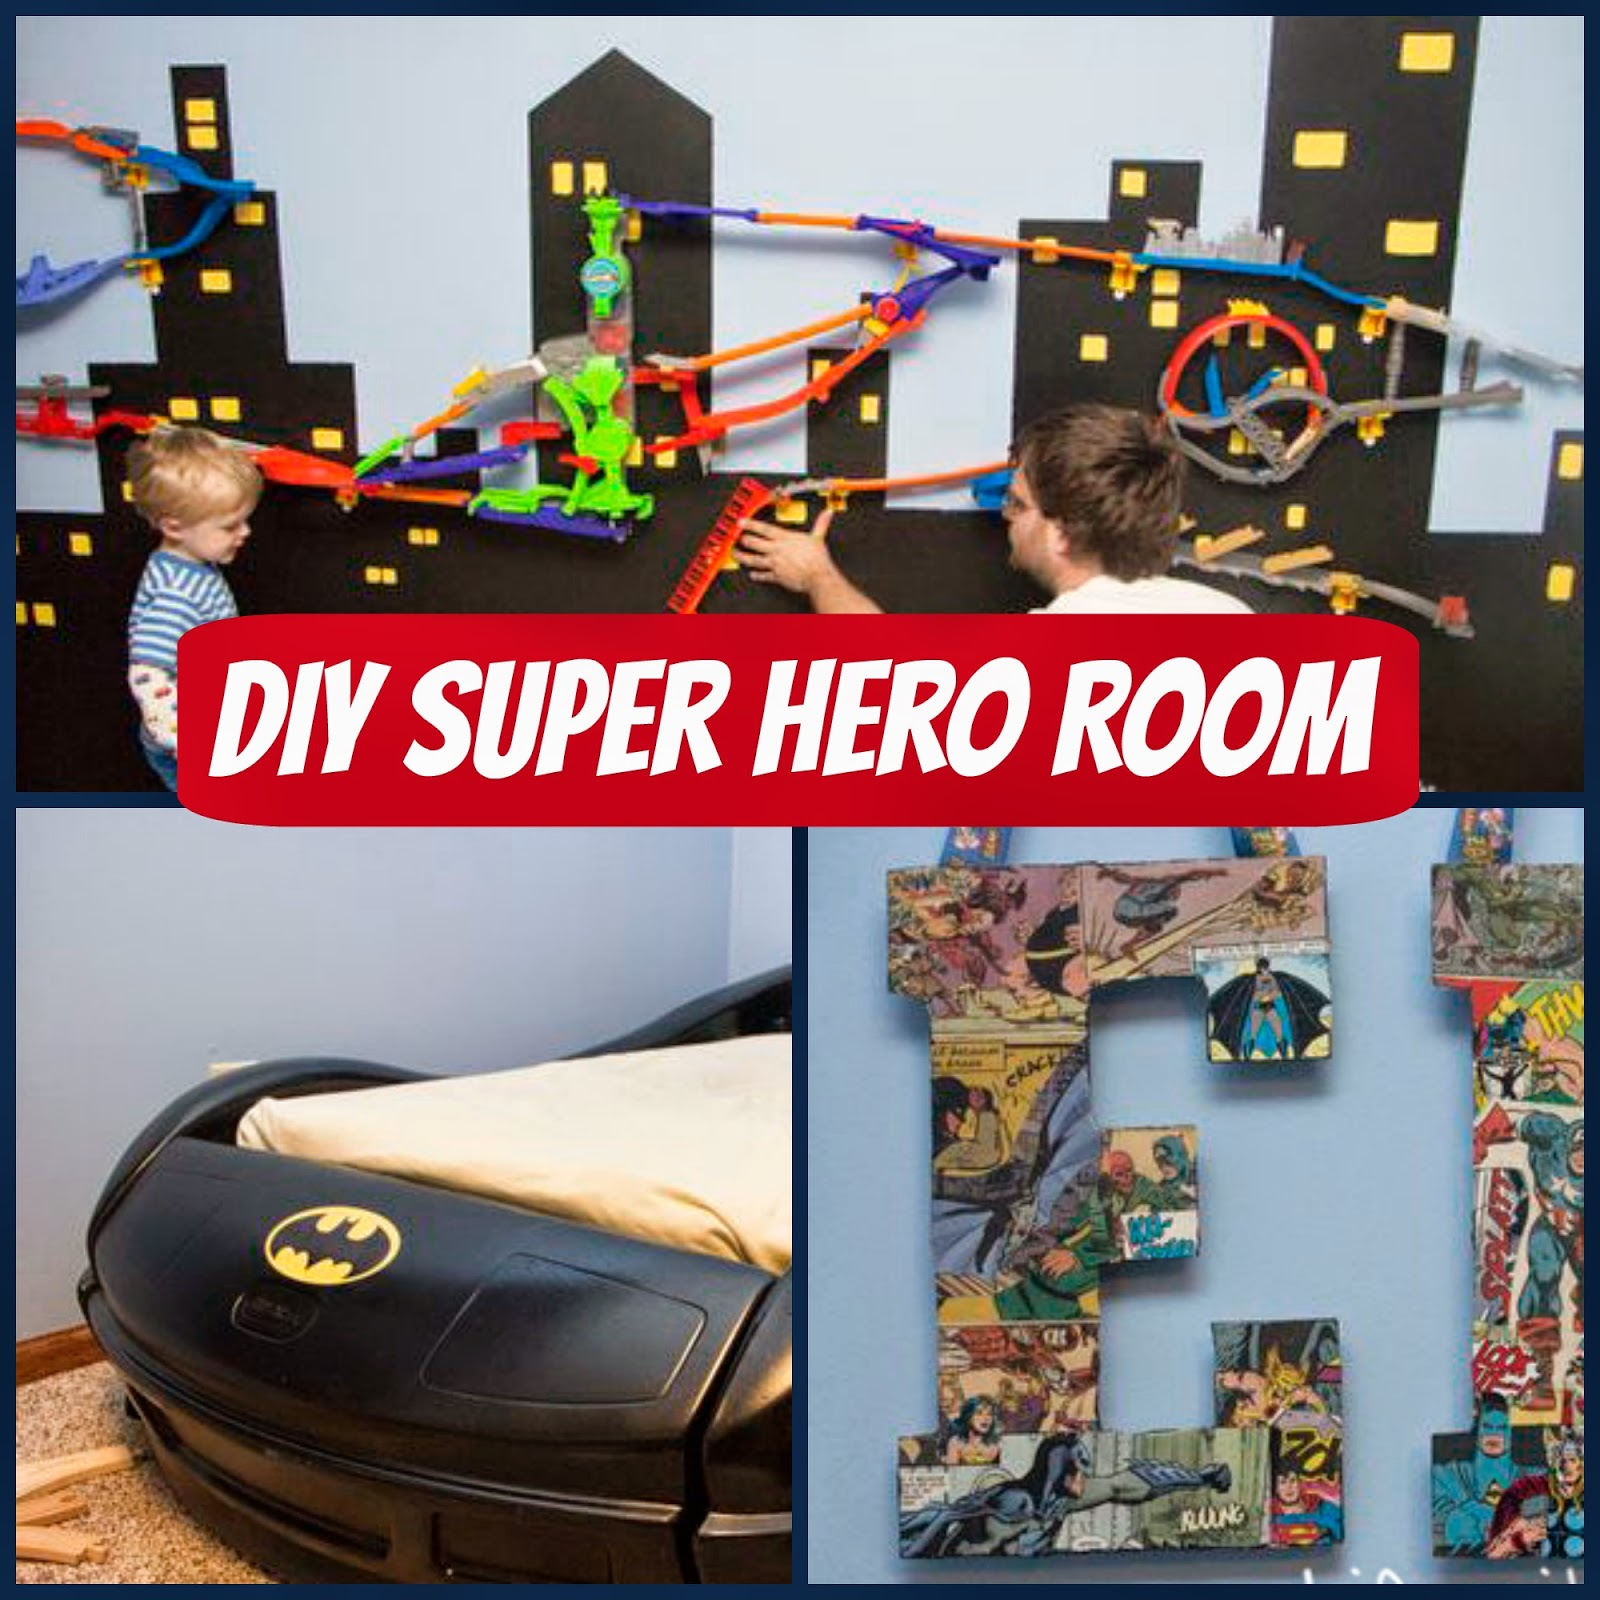 Superhero bedroom - To Start With We Painted The Walls A Lighter Shade Of Batman Blue Then I Turned My Attention To His Little Race Car Bed I Decided I Could Easily Re Do